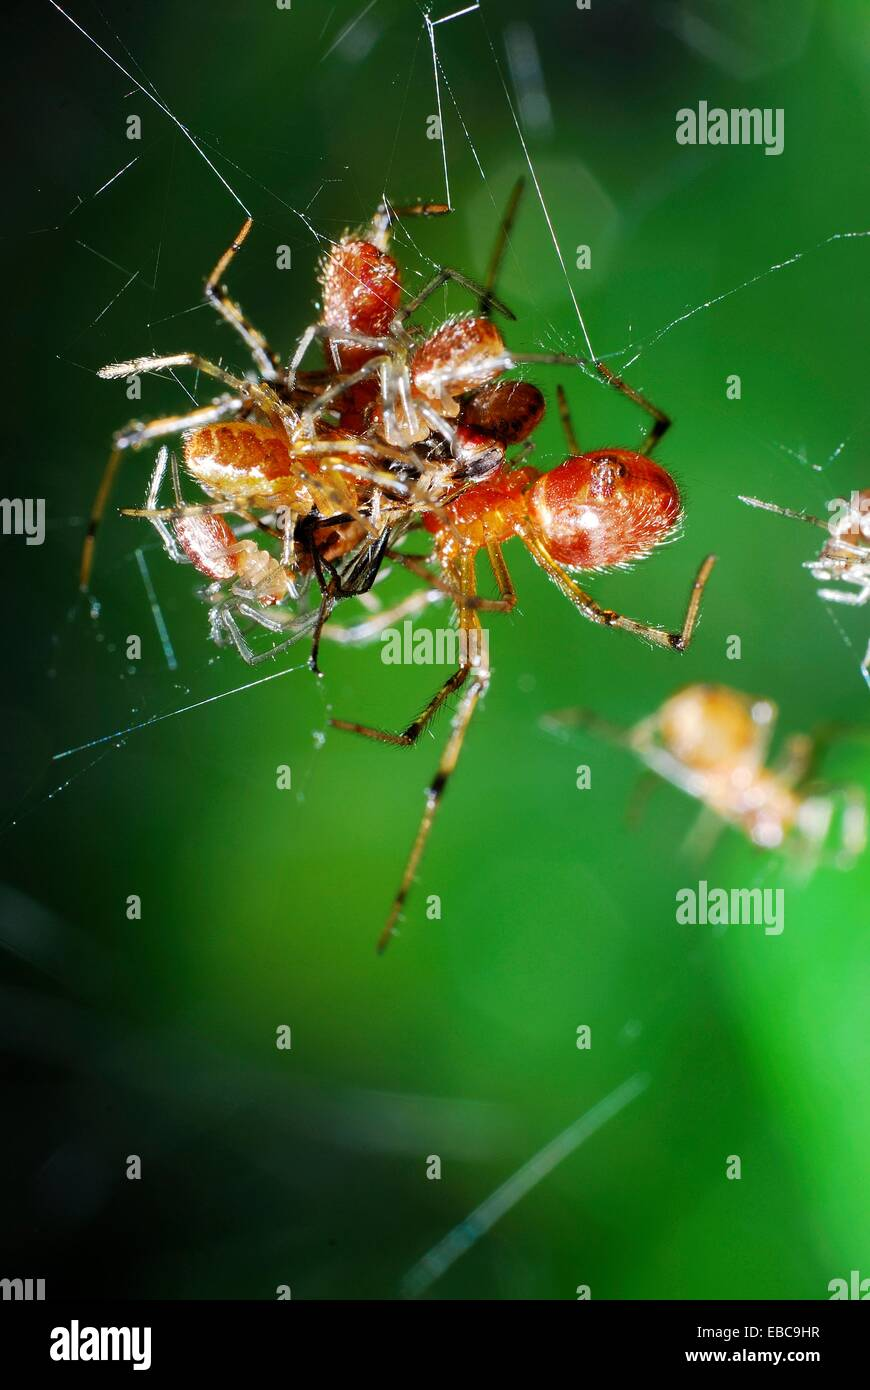 Social spider eating a fly Anelosimus domingo, Theridiidae Acre, Brazil, 2009 - Stock Image